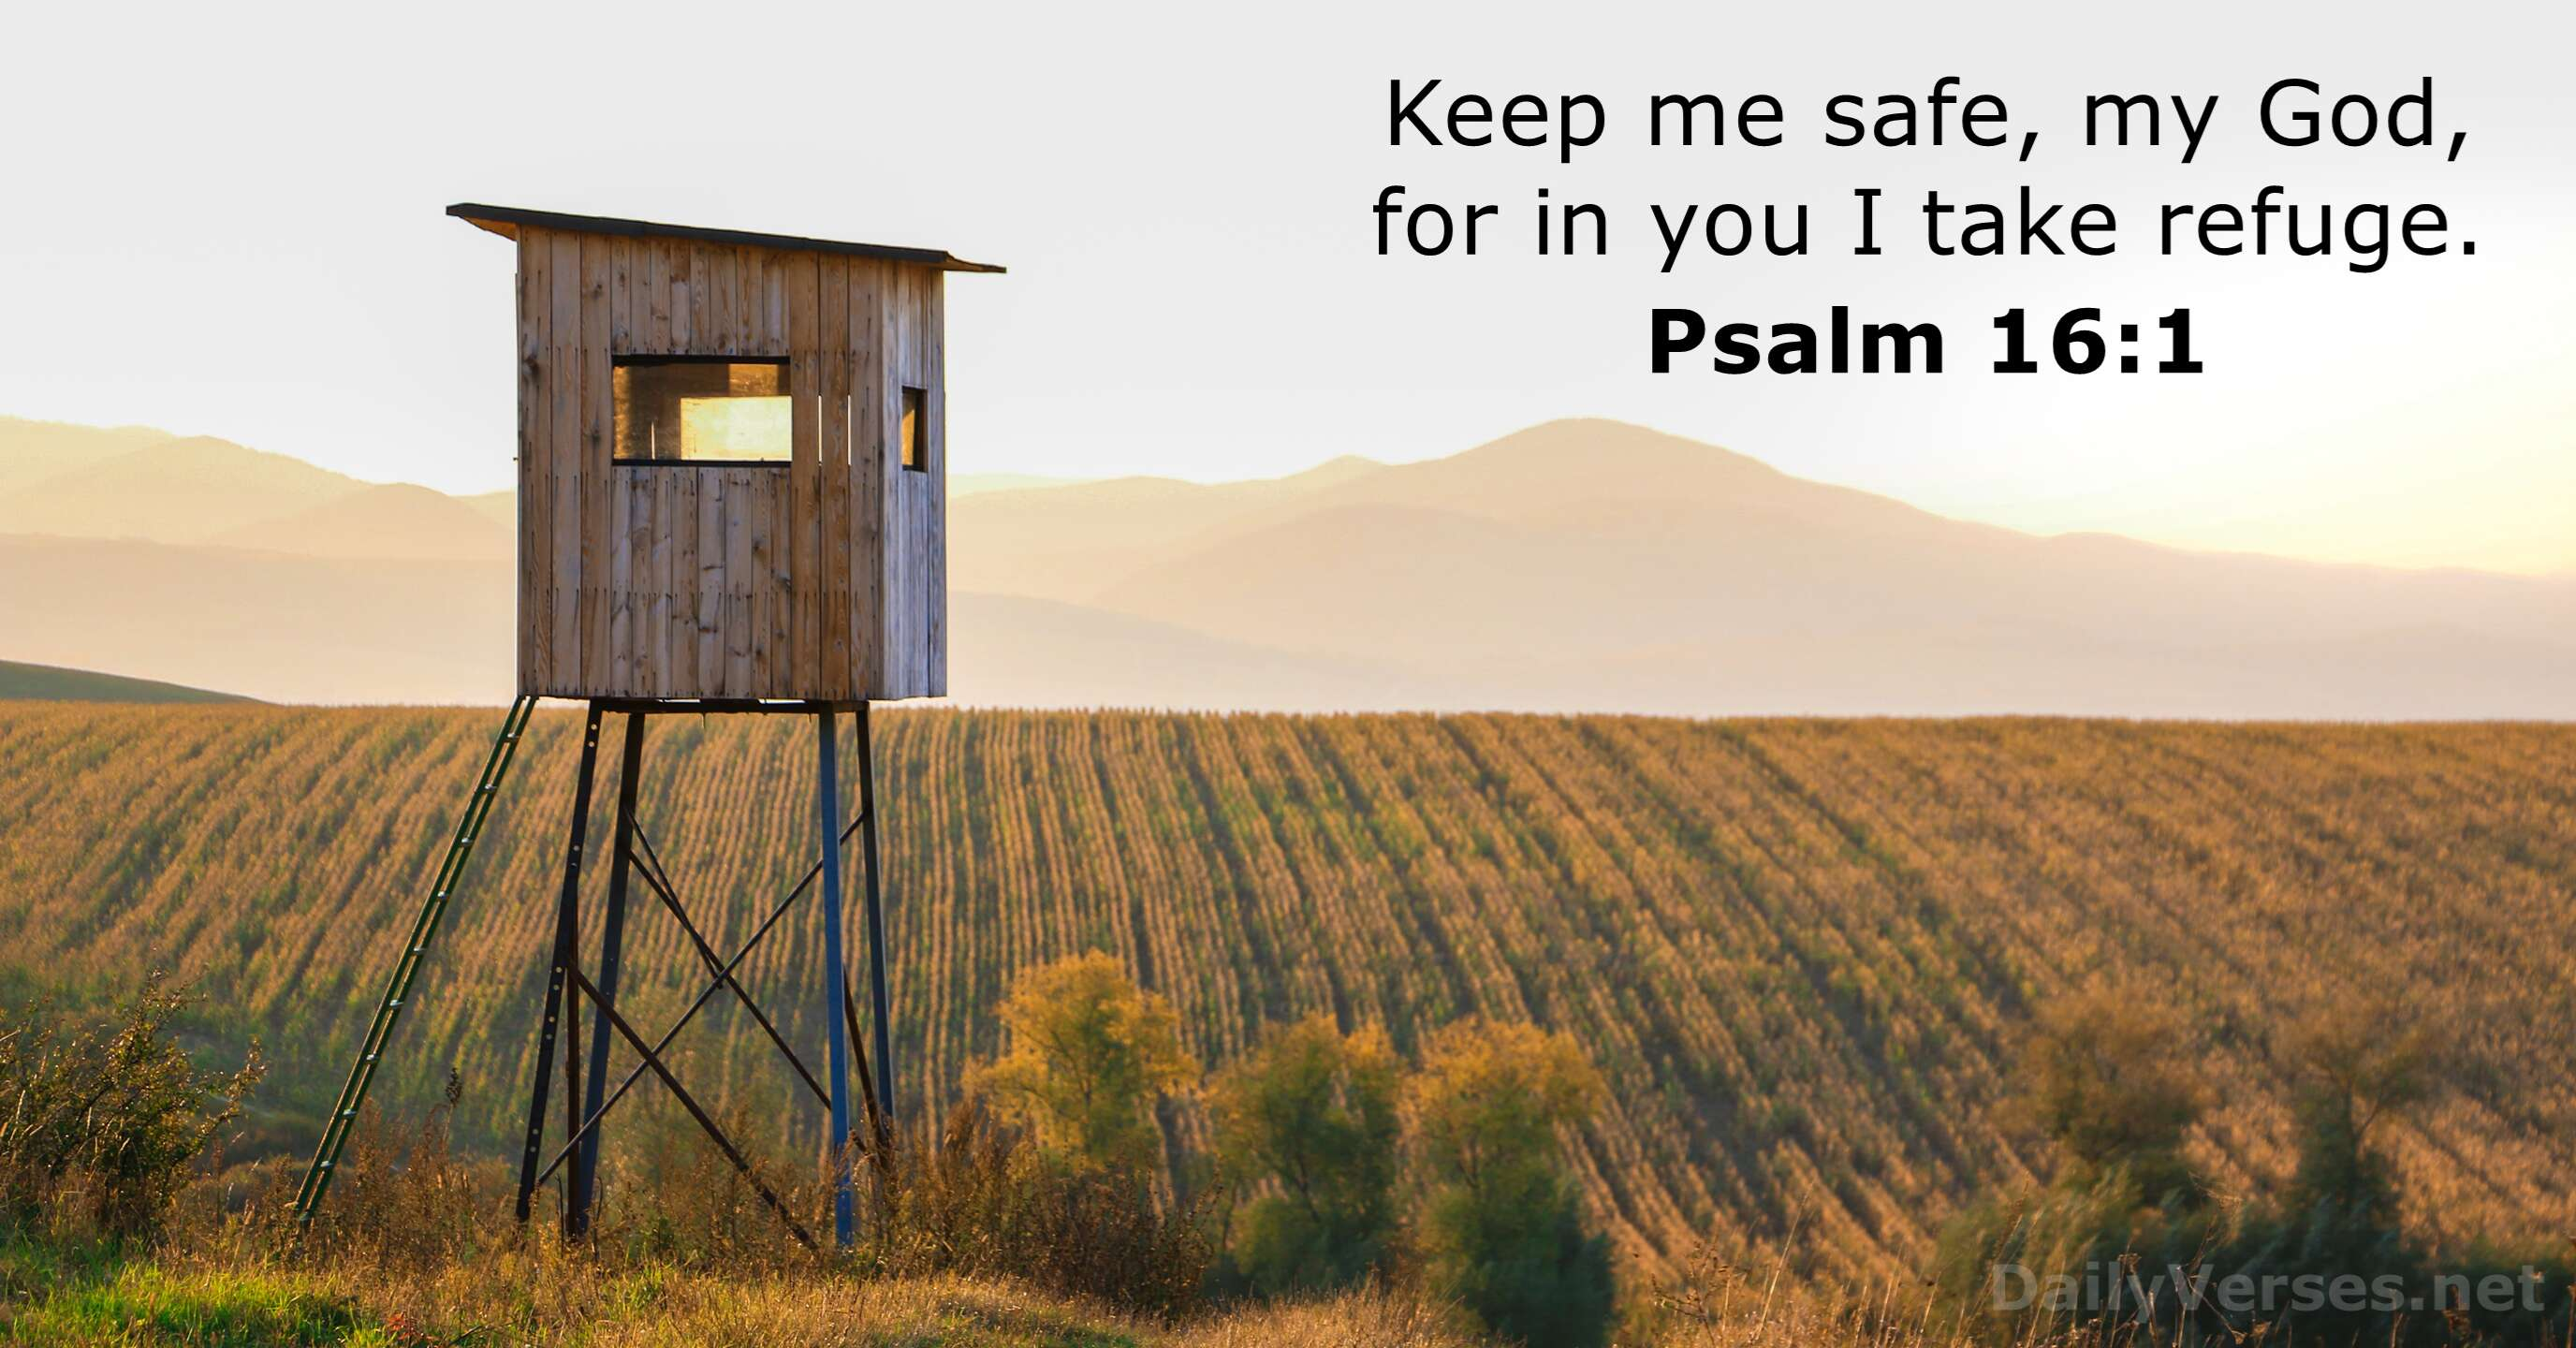 February 17, 2020 - Bible verse of the day - Psalm 16:1 ...